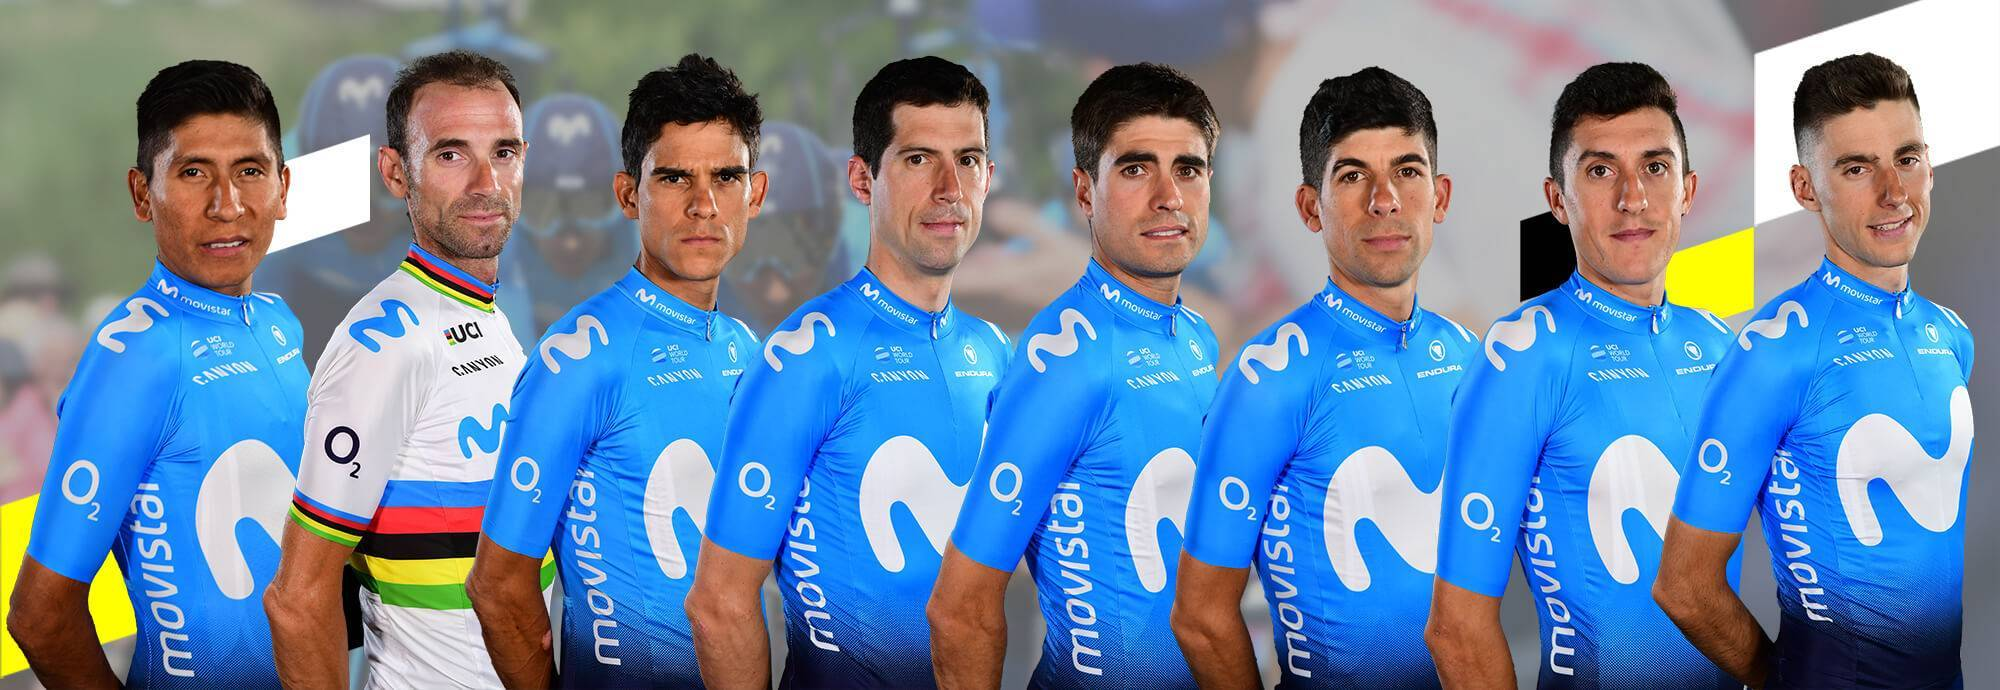 Header: MOVISTAR TEAM